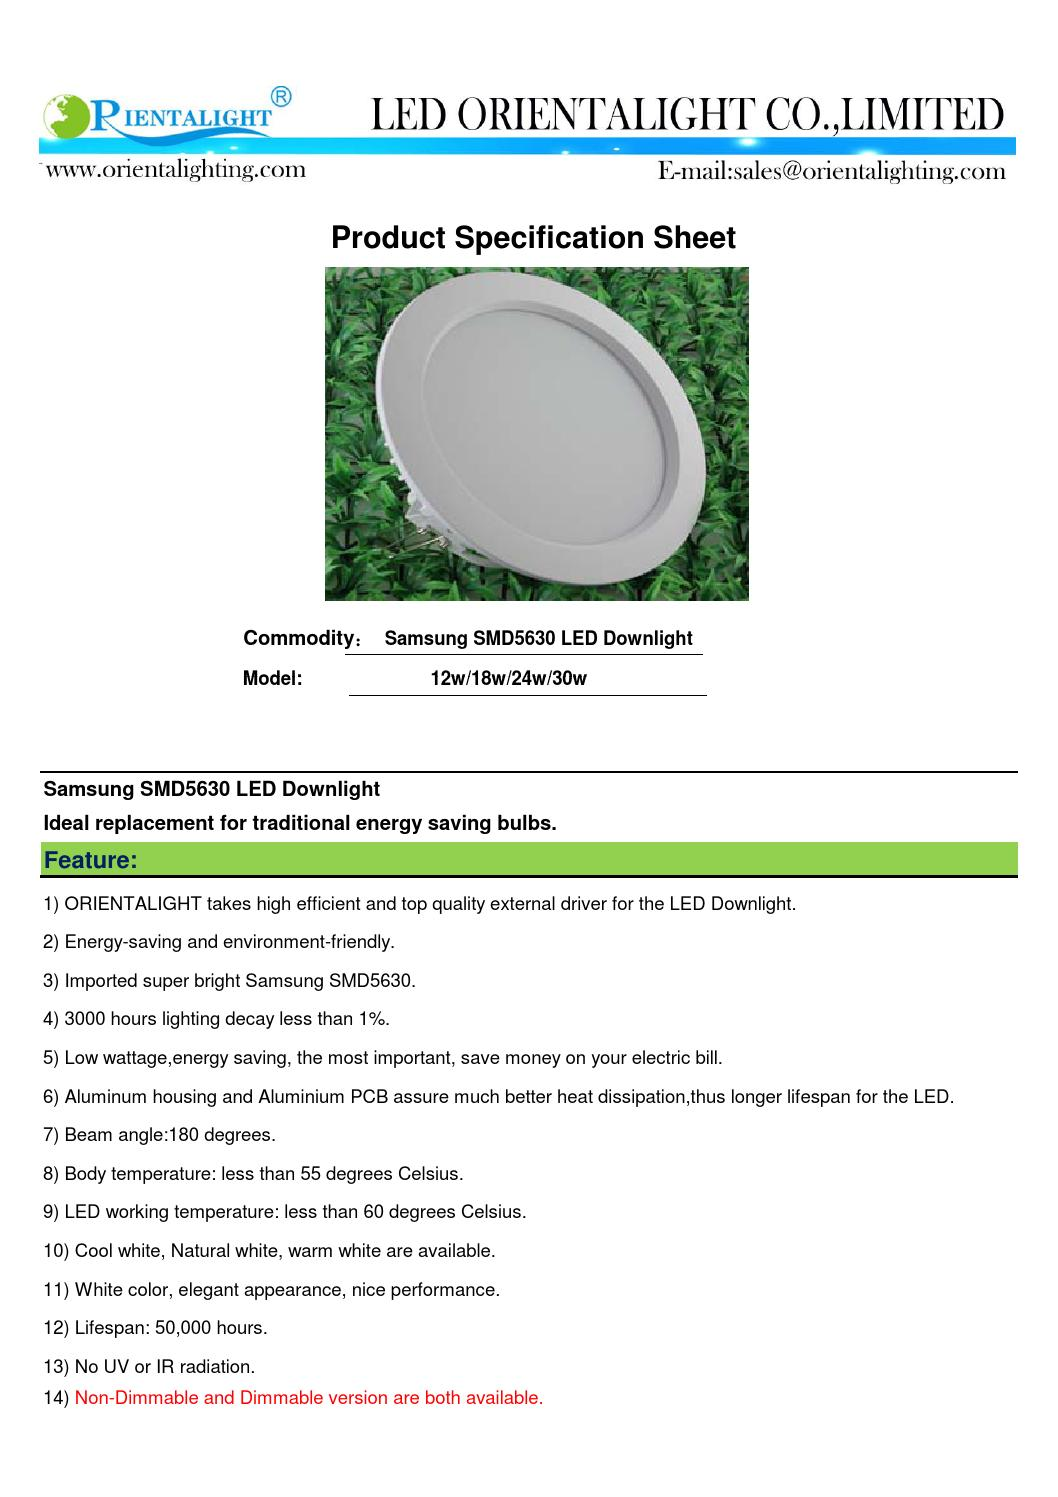 Specification sheet of new led downlight by LED Orientalight Co